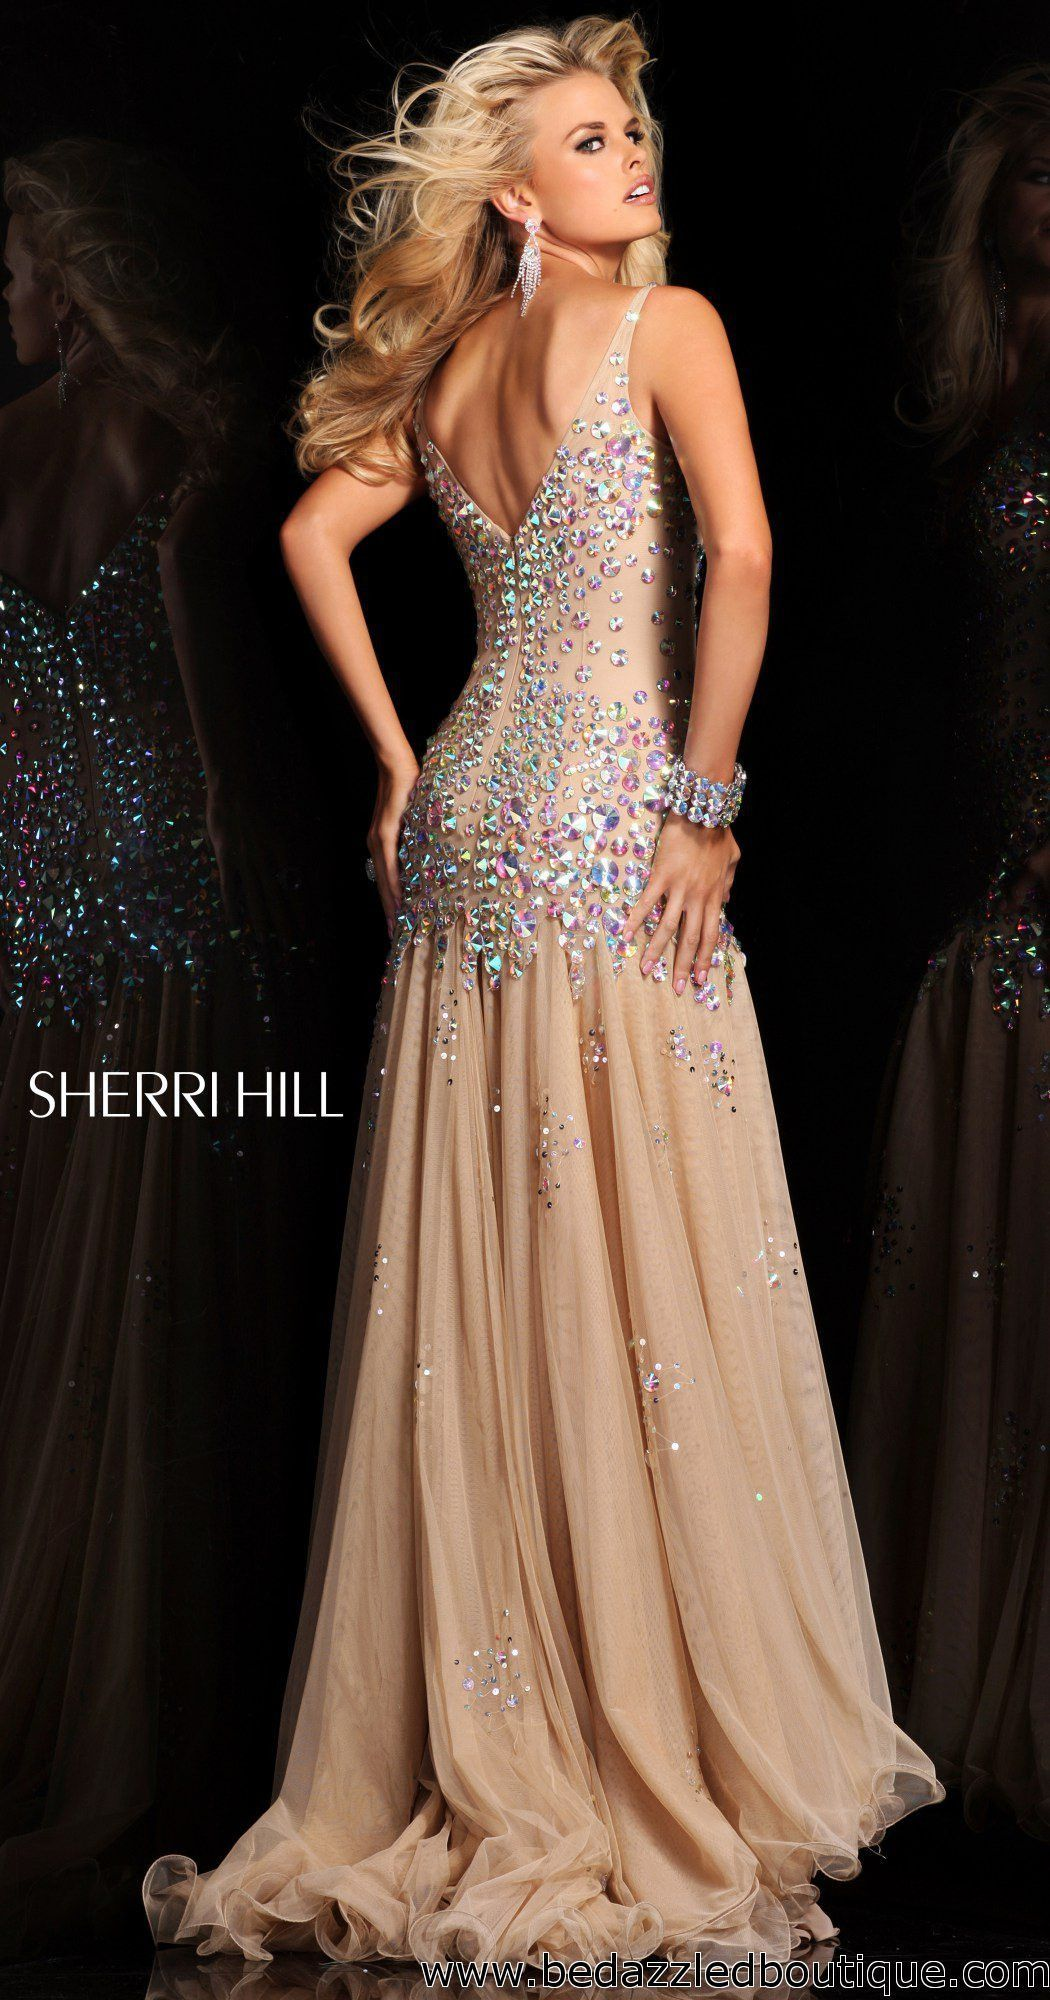 Sherri hill chiffon gown jewel and gowns